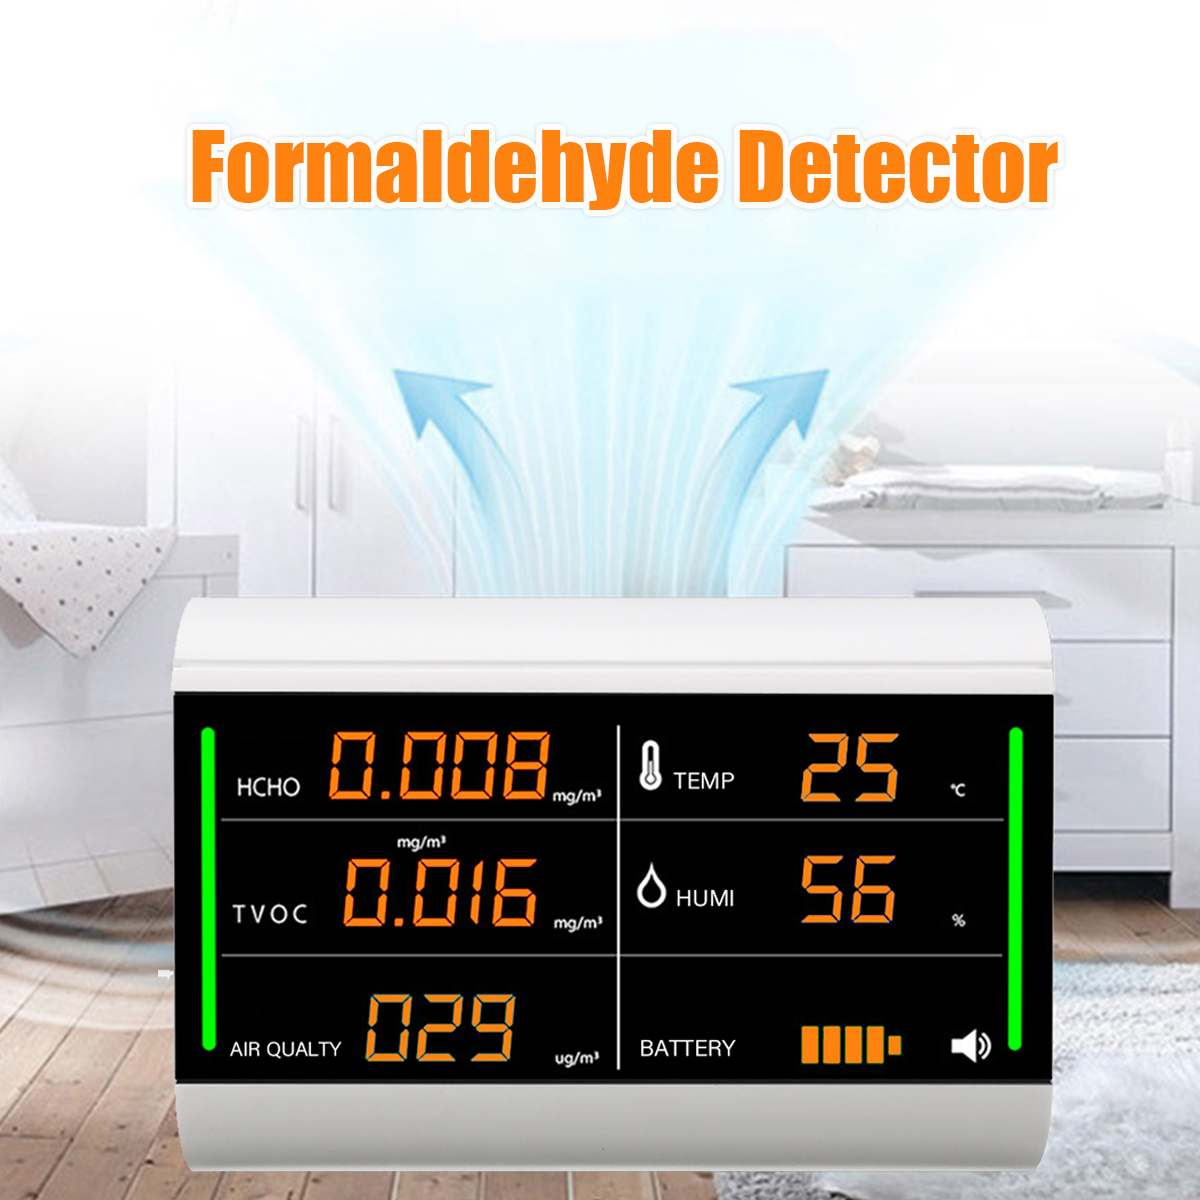 Formaldehyde Testing Tool Home Air Quality Detector Tester Digital Screen USB  TVOC HCHO Benzene/Dust/Temperature/Humidity MeterFormaldehyde Testing Tool Home Air Quality Detector Tester Digital Screen USB  TVOC HCHO Benzene/Dust/Temperature/Humidity Meter